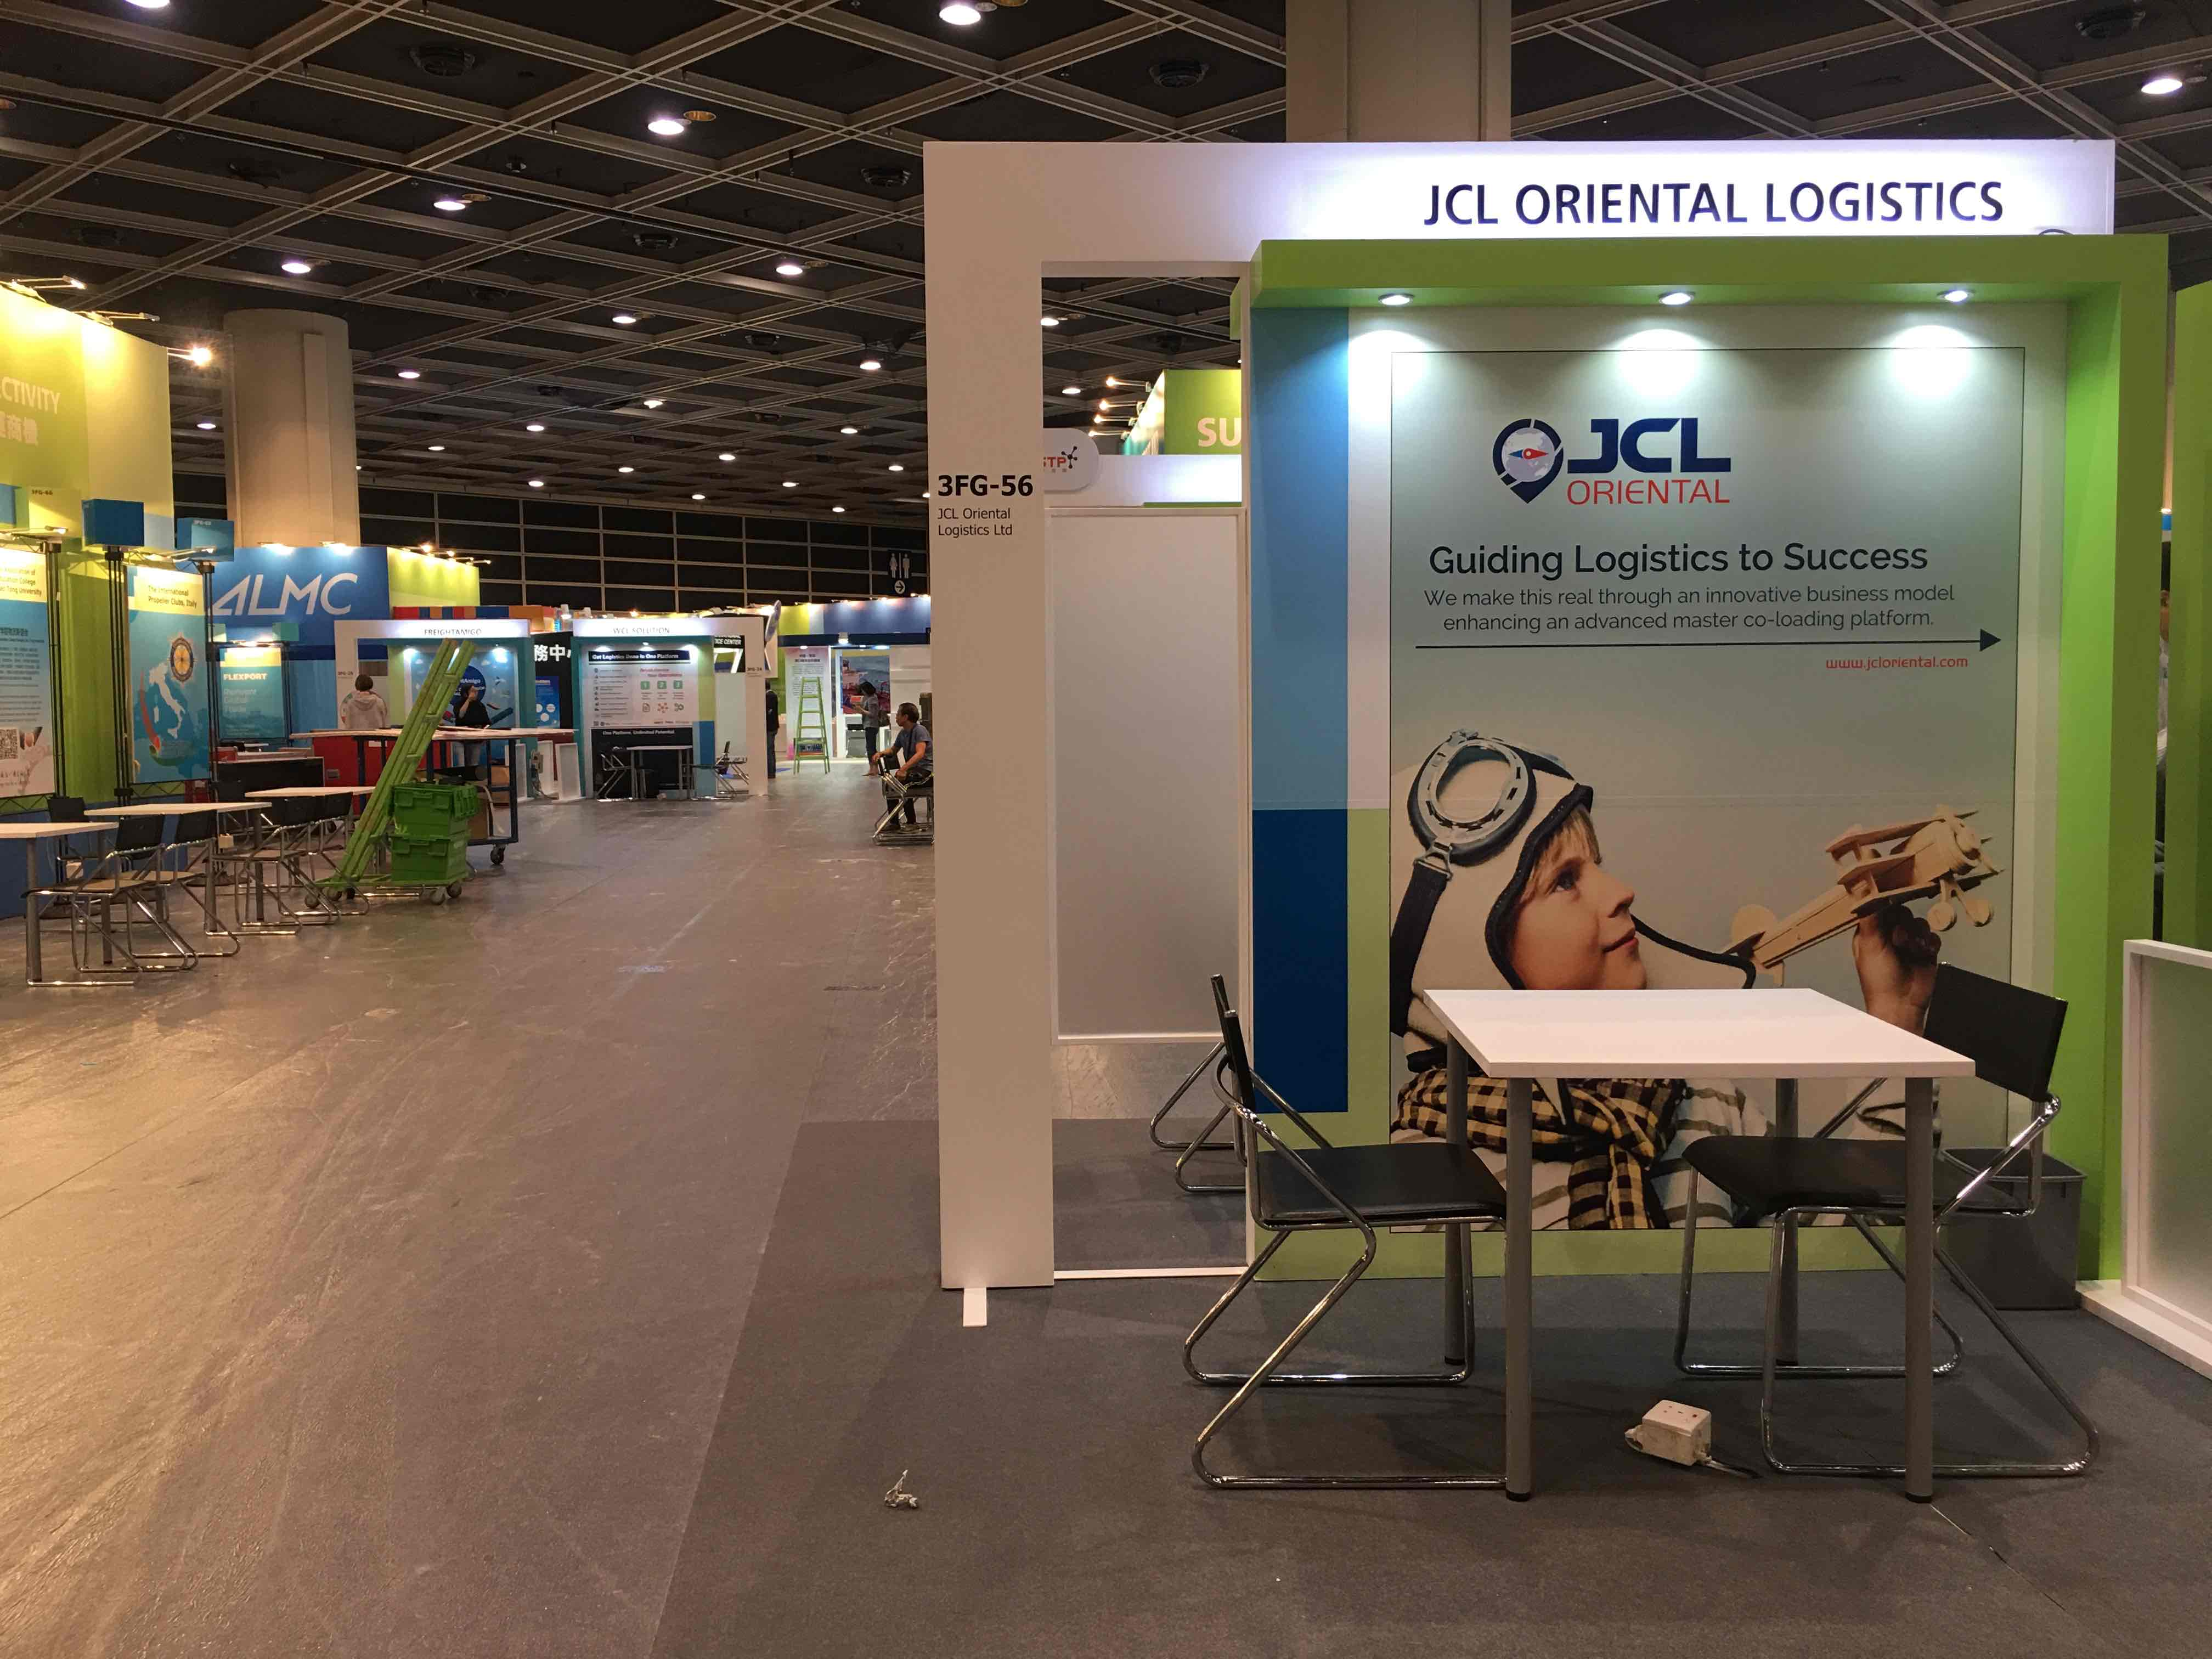 2017 ALMC, the Asia's largest logistics conference